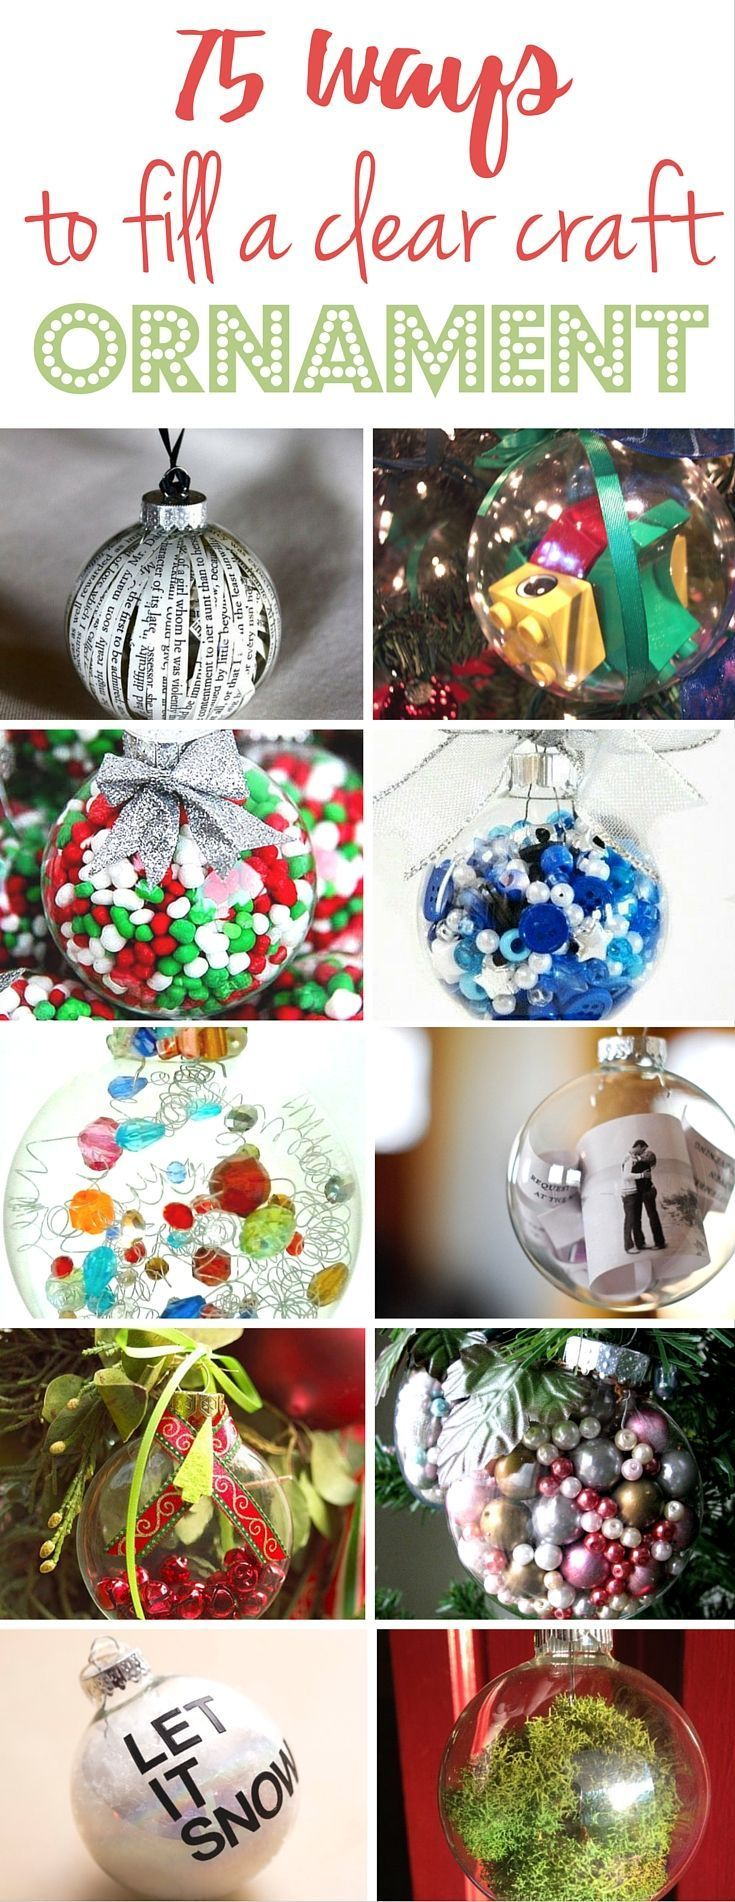 75 Ways To Fill Clear Glass Ornaments Homemade Christmas Ornaments Refunk My Junk Christmas Ornaments Homemade Christmas Christmas Ornaments Homemade